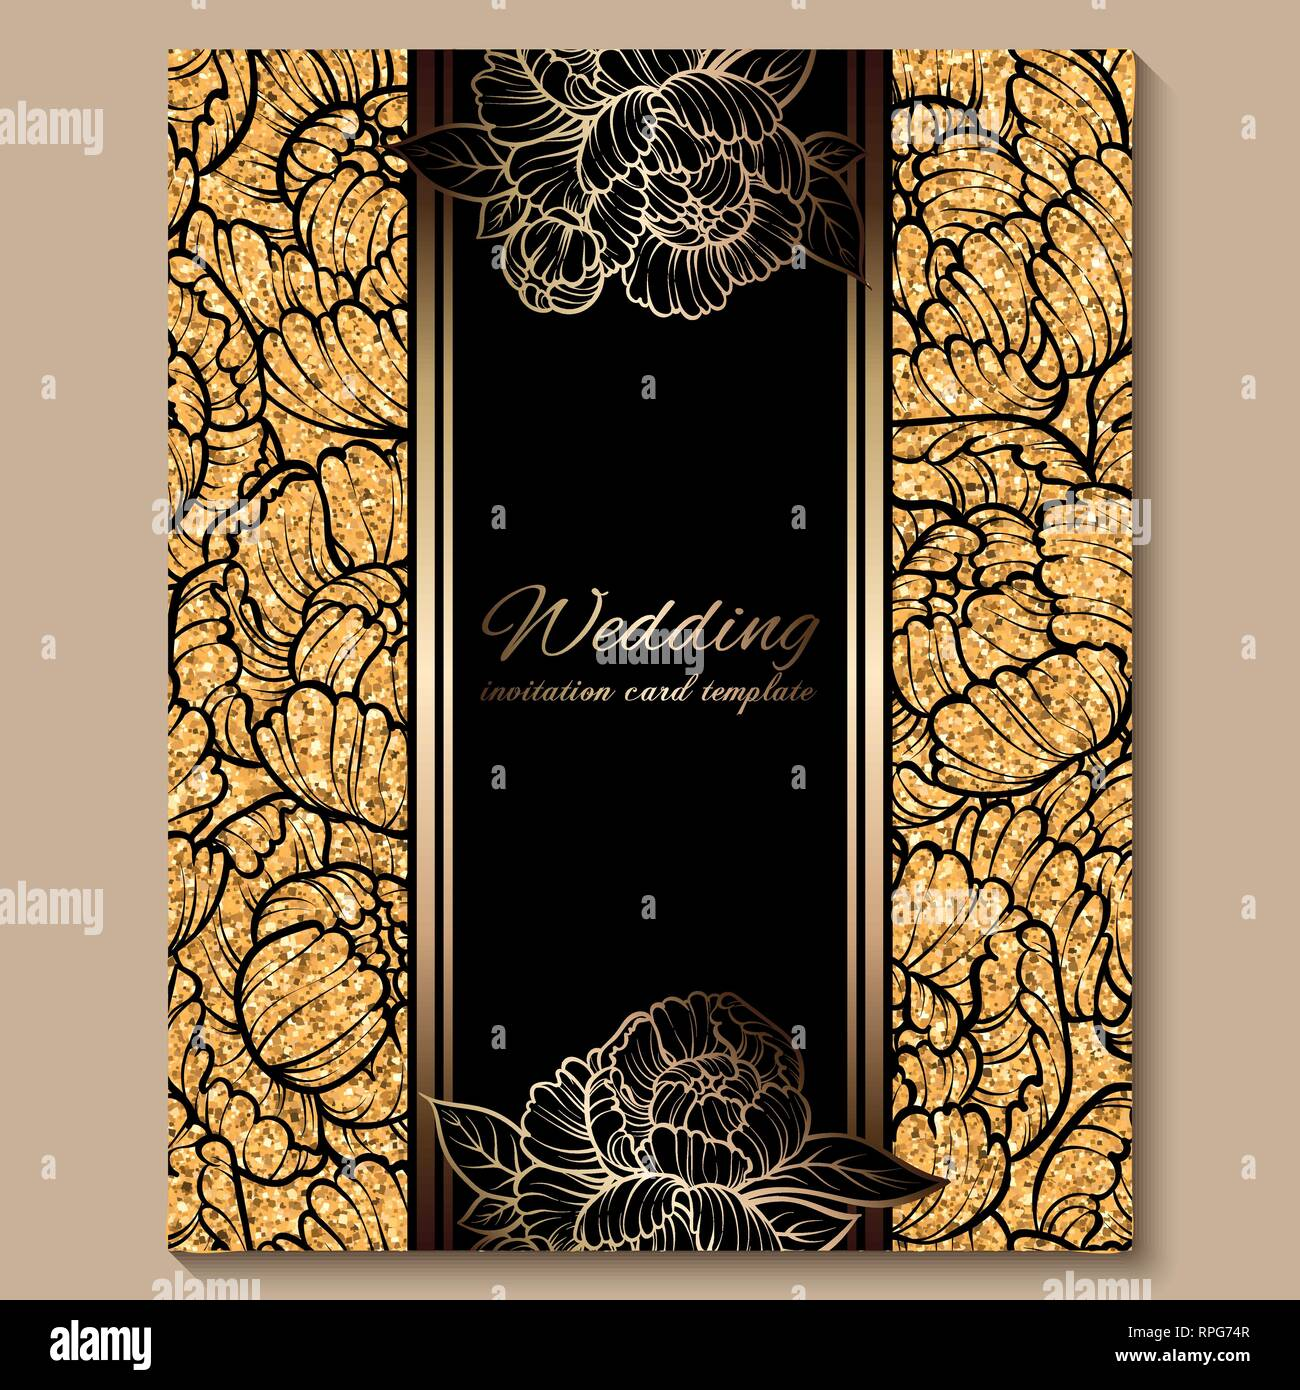 https www alamy com antique royal luxury wedding invitation card golden glitter background with frame and place for text black lacy foliage made of roses or peonies image237614071 html